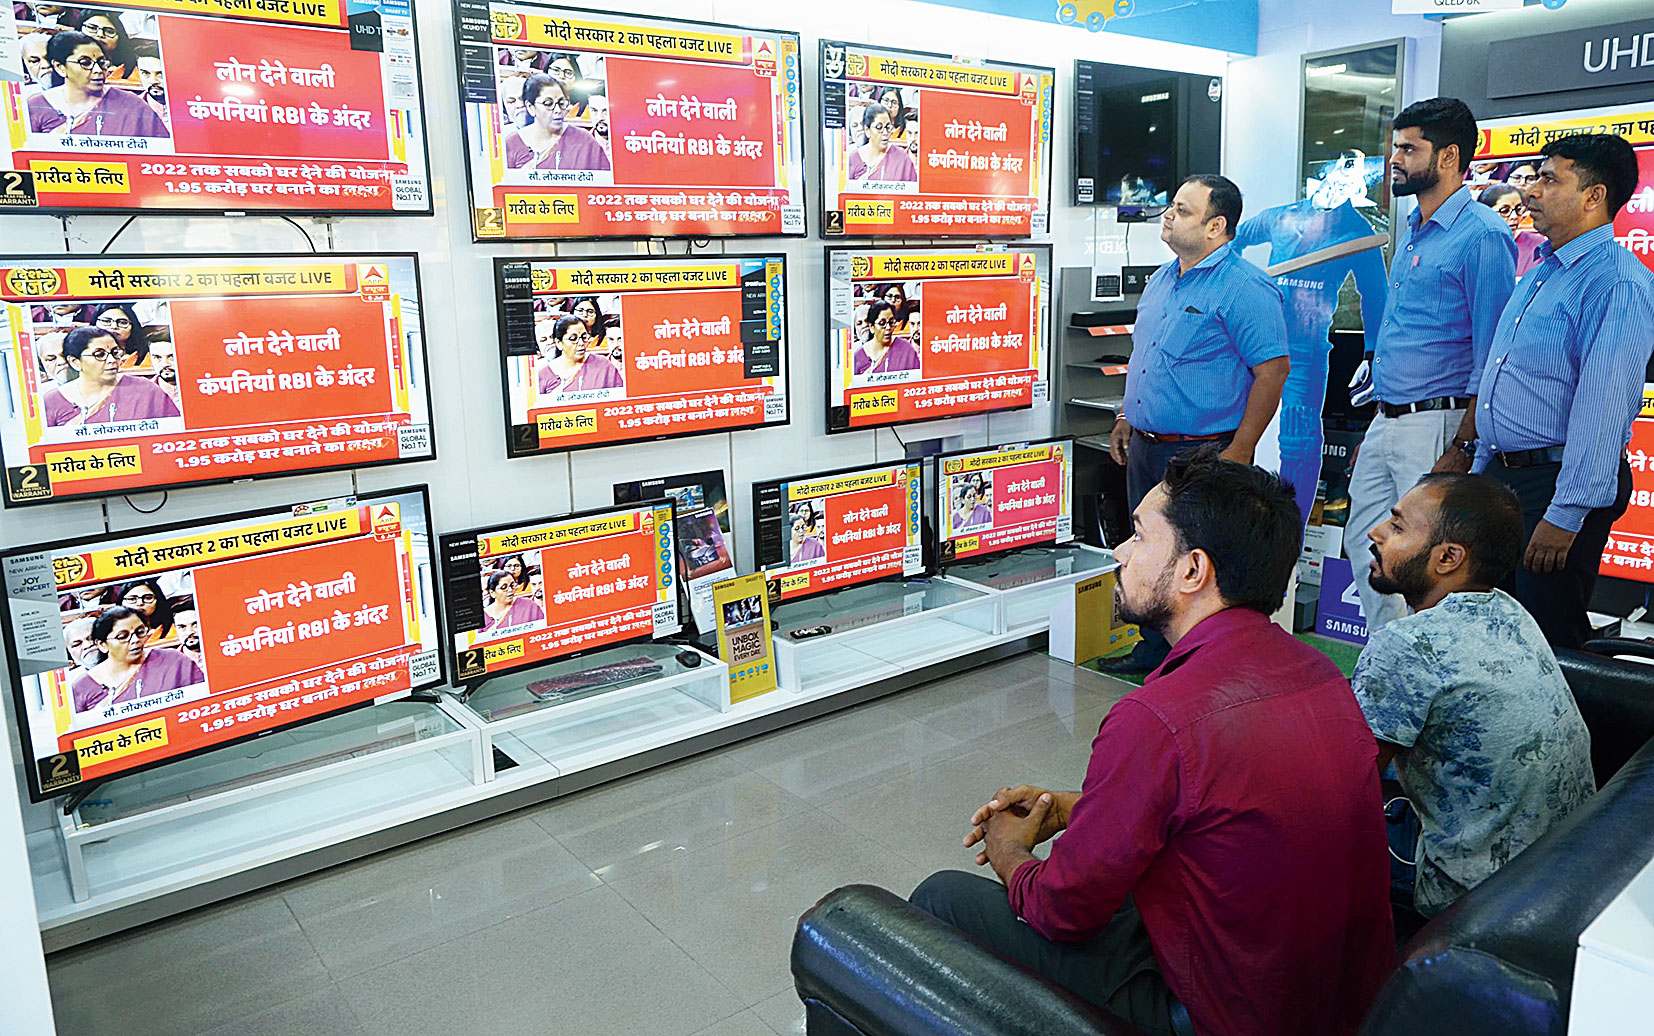 People watch the budget at an electronics showroom in Ranchi on Friday.